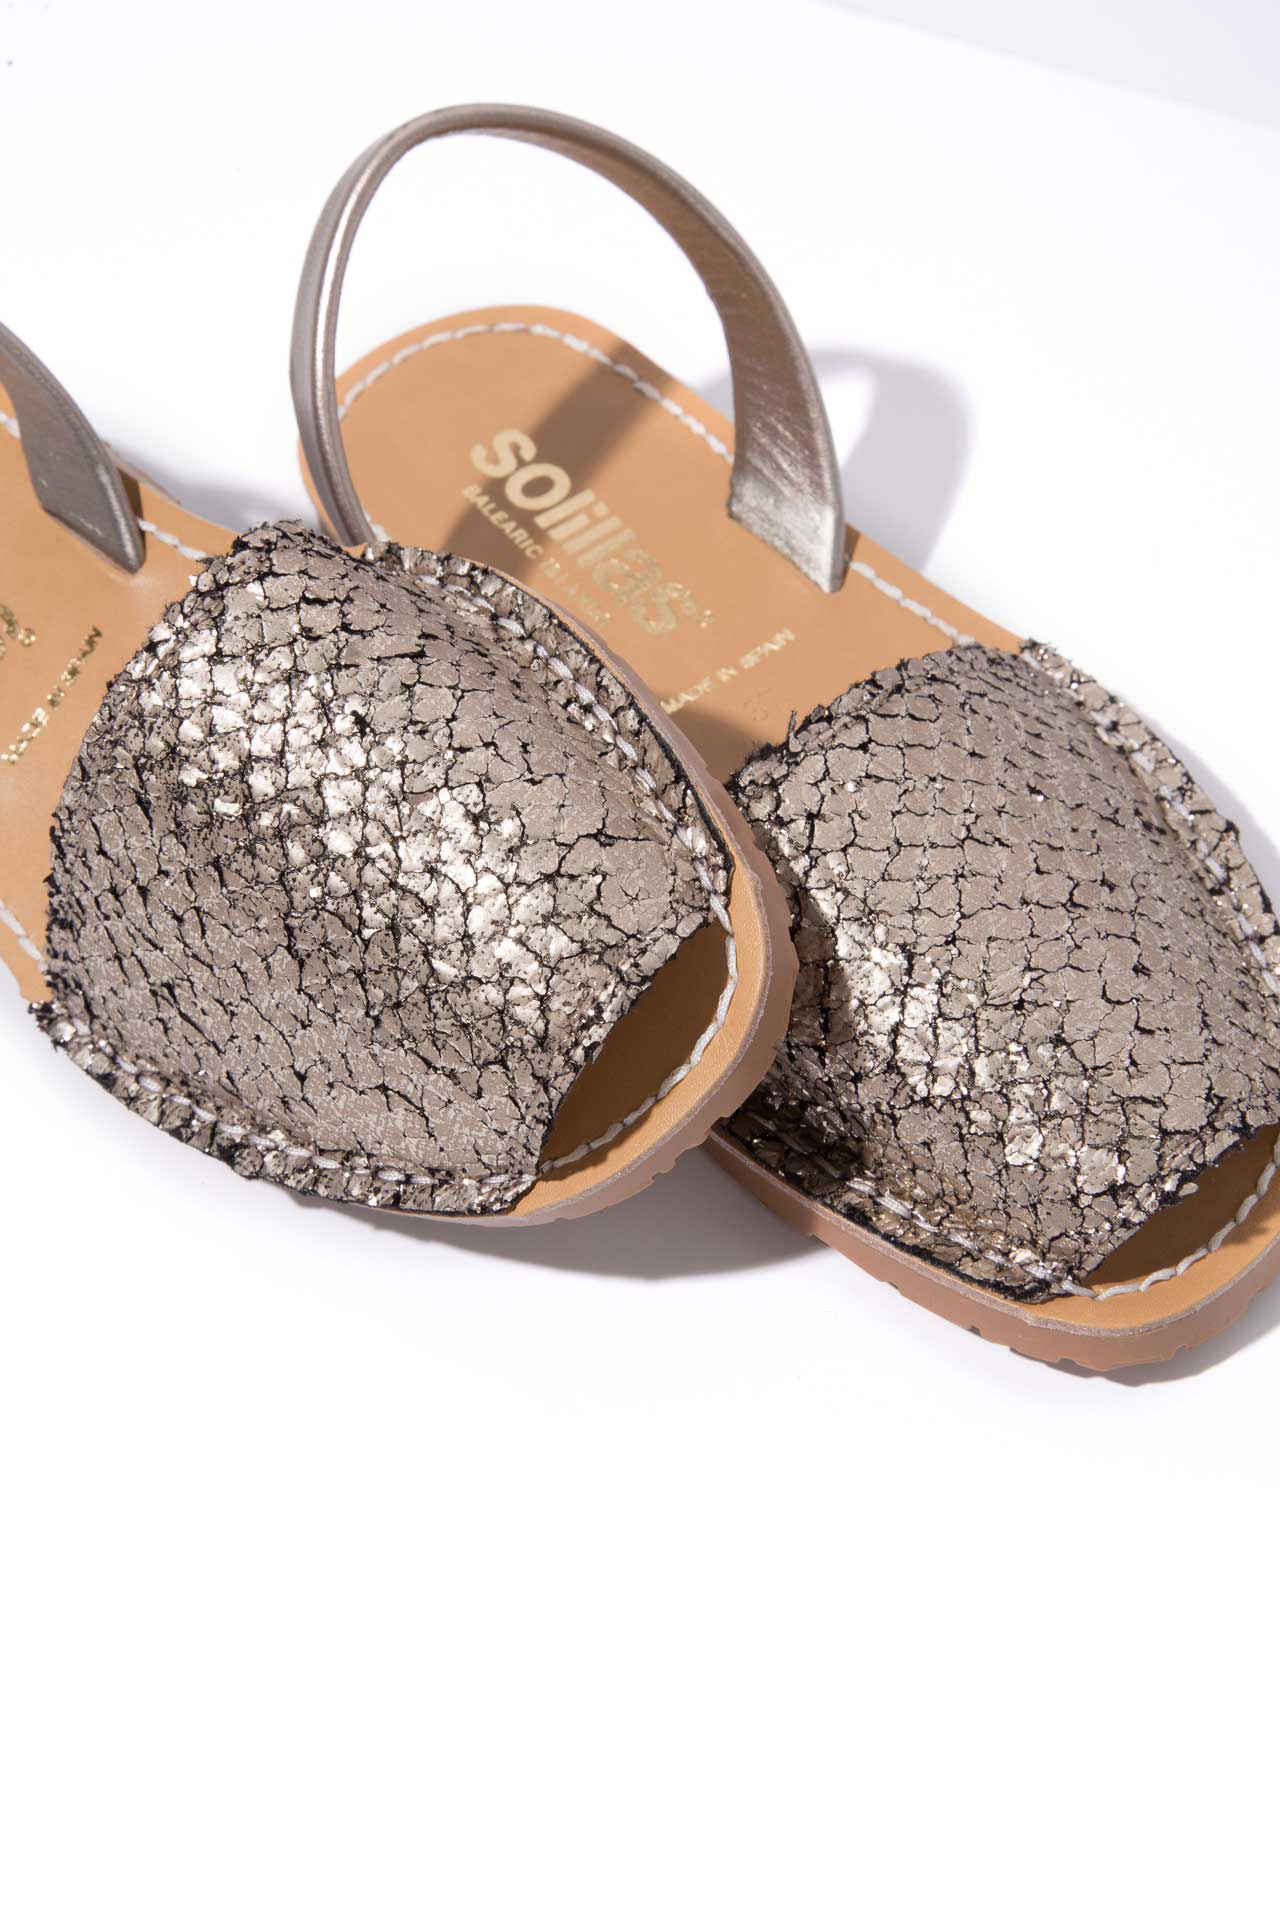 SANTOS - Distressed Gunmetal Leather Menorcan sandals